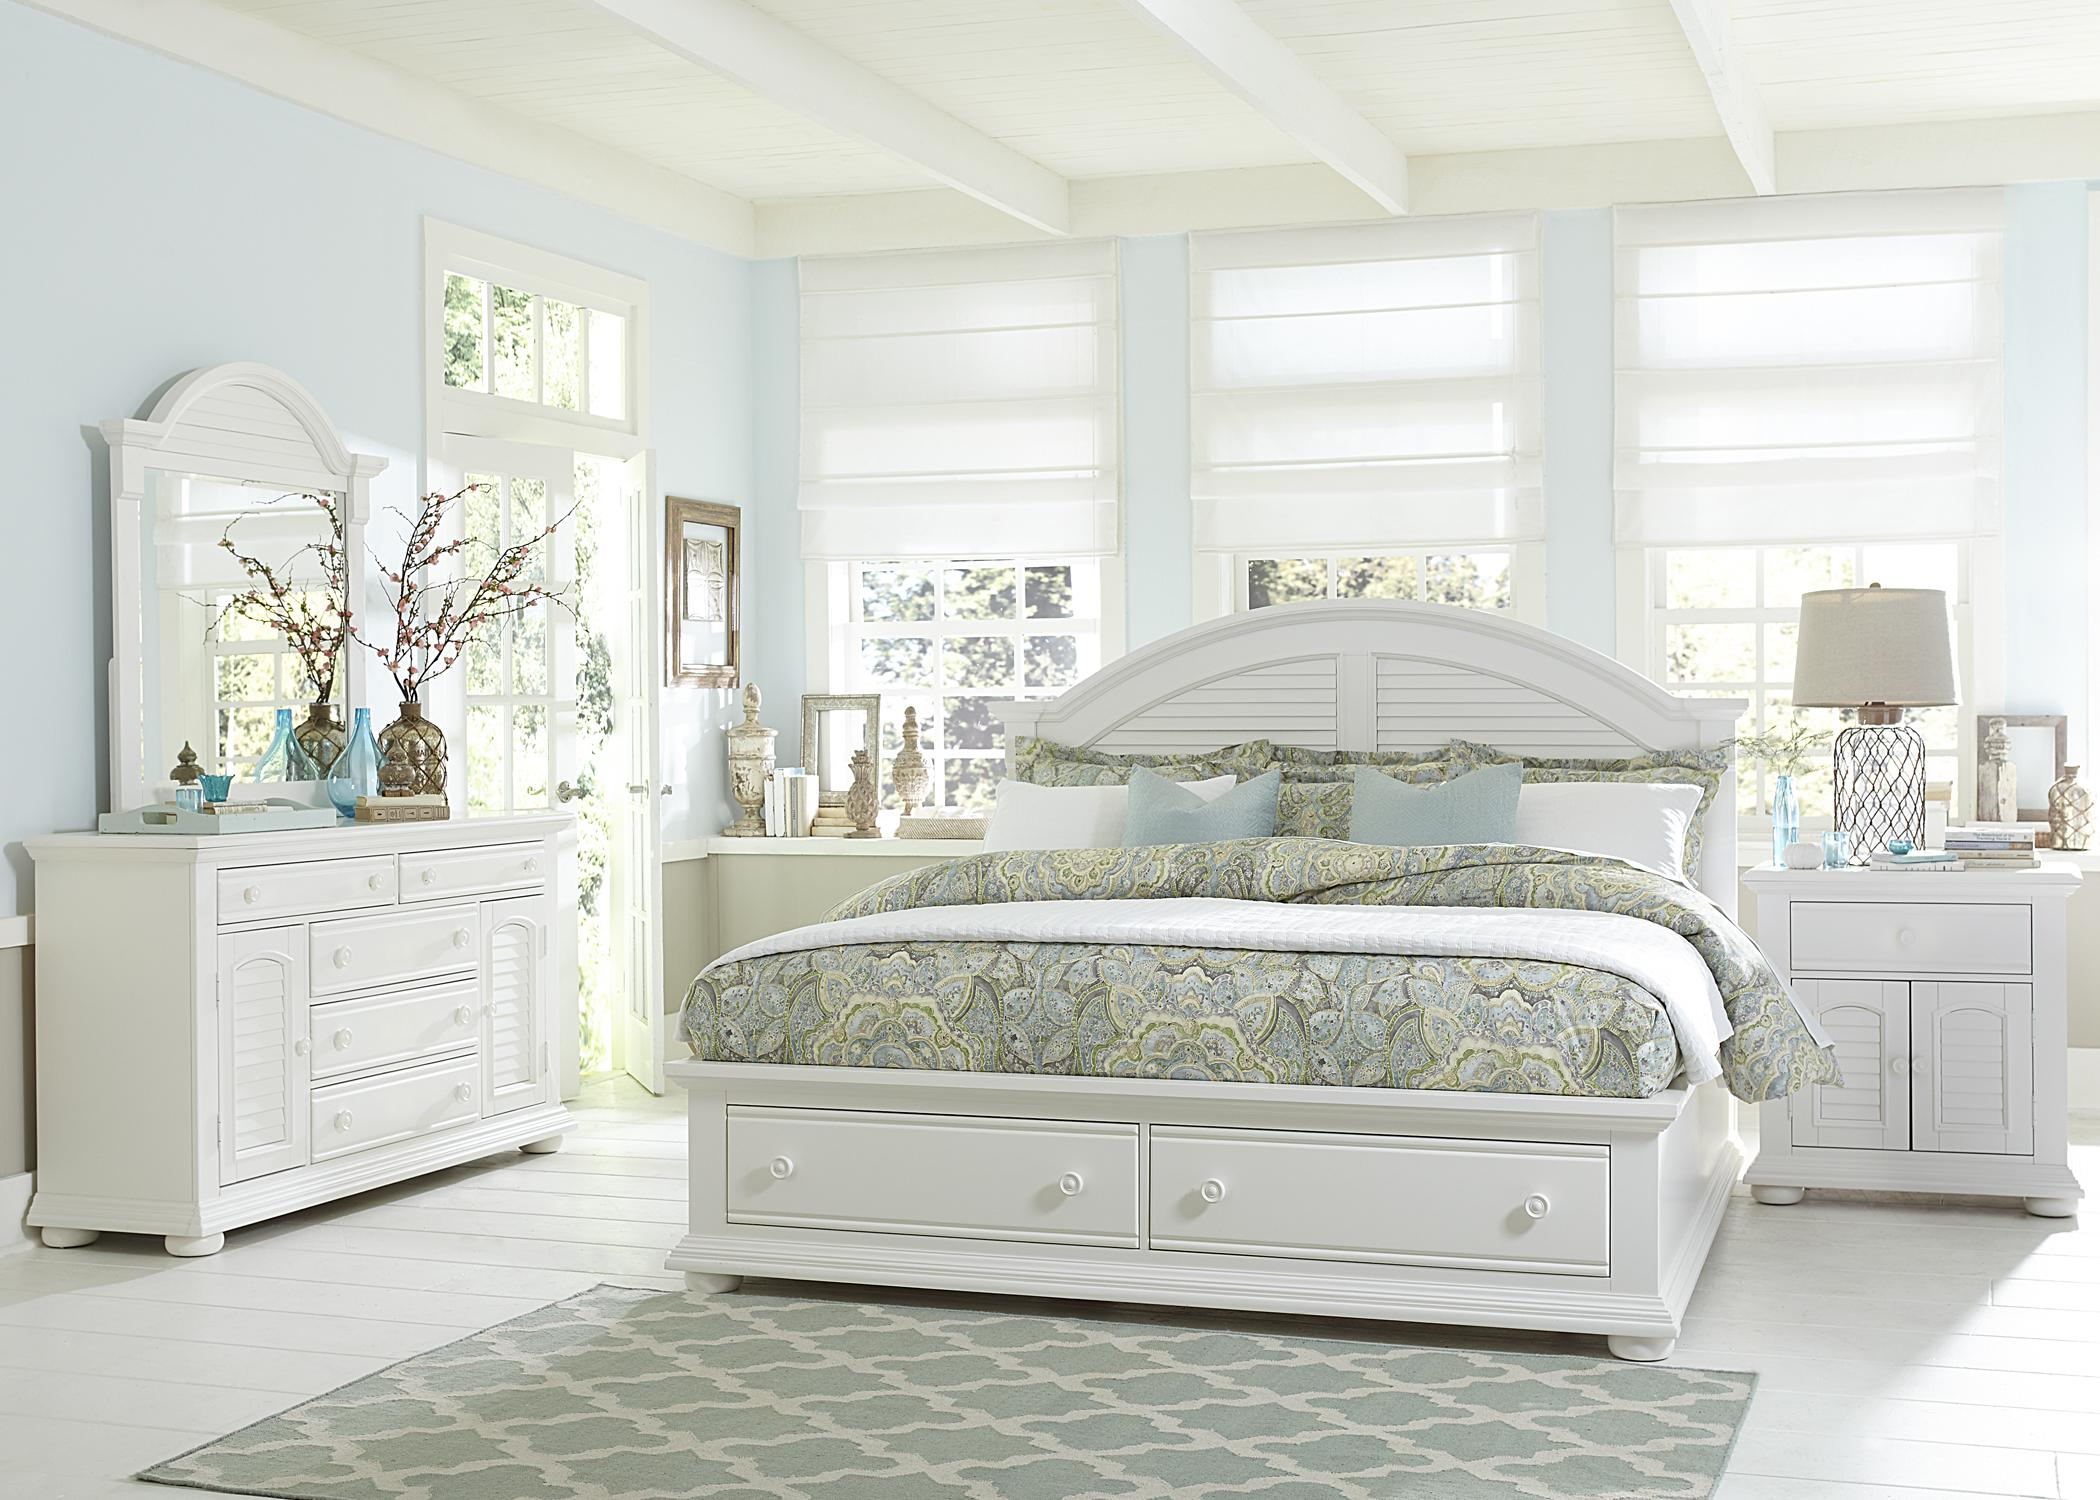 Excellent White Queen Bedroom Set Decorating Ideas